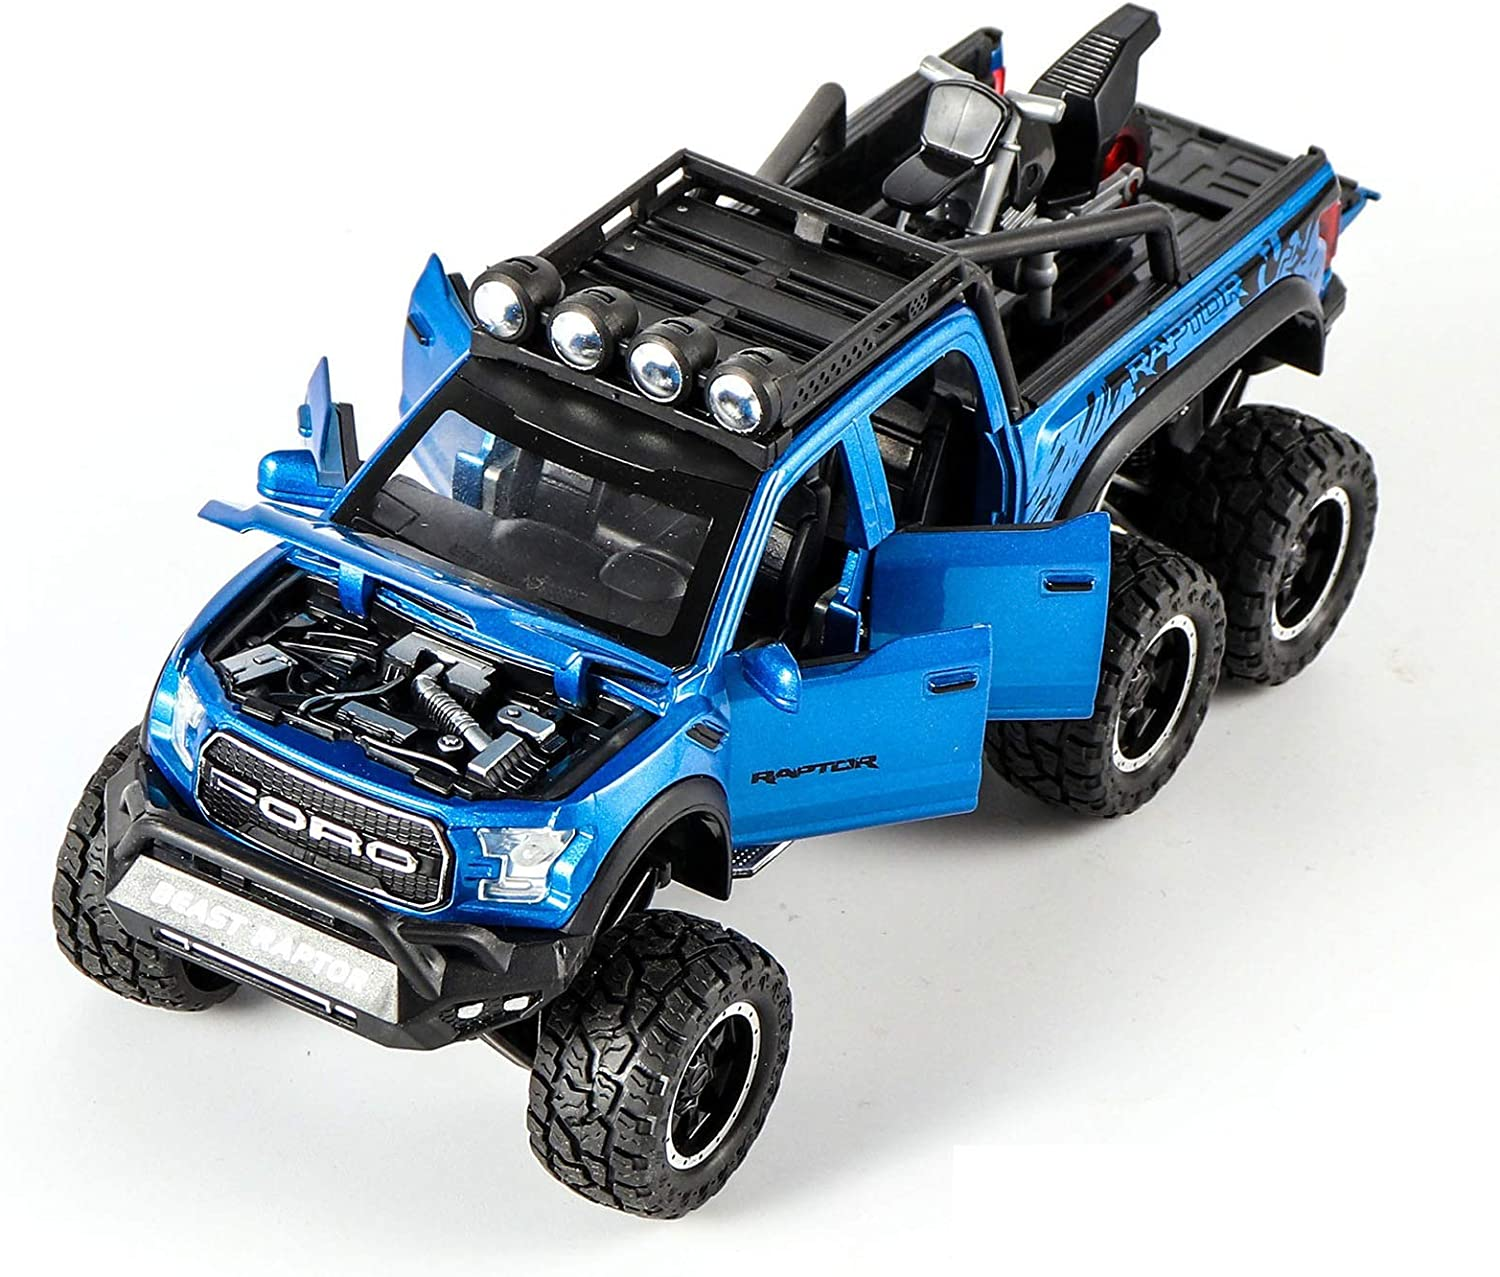 NMBD 1:24 for Ford F150 Car Toy Department store Alloy Model Ranking TOP9 Cast Die Mod